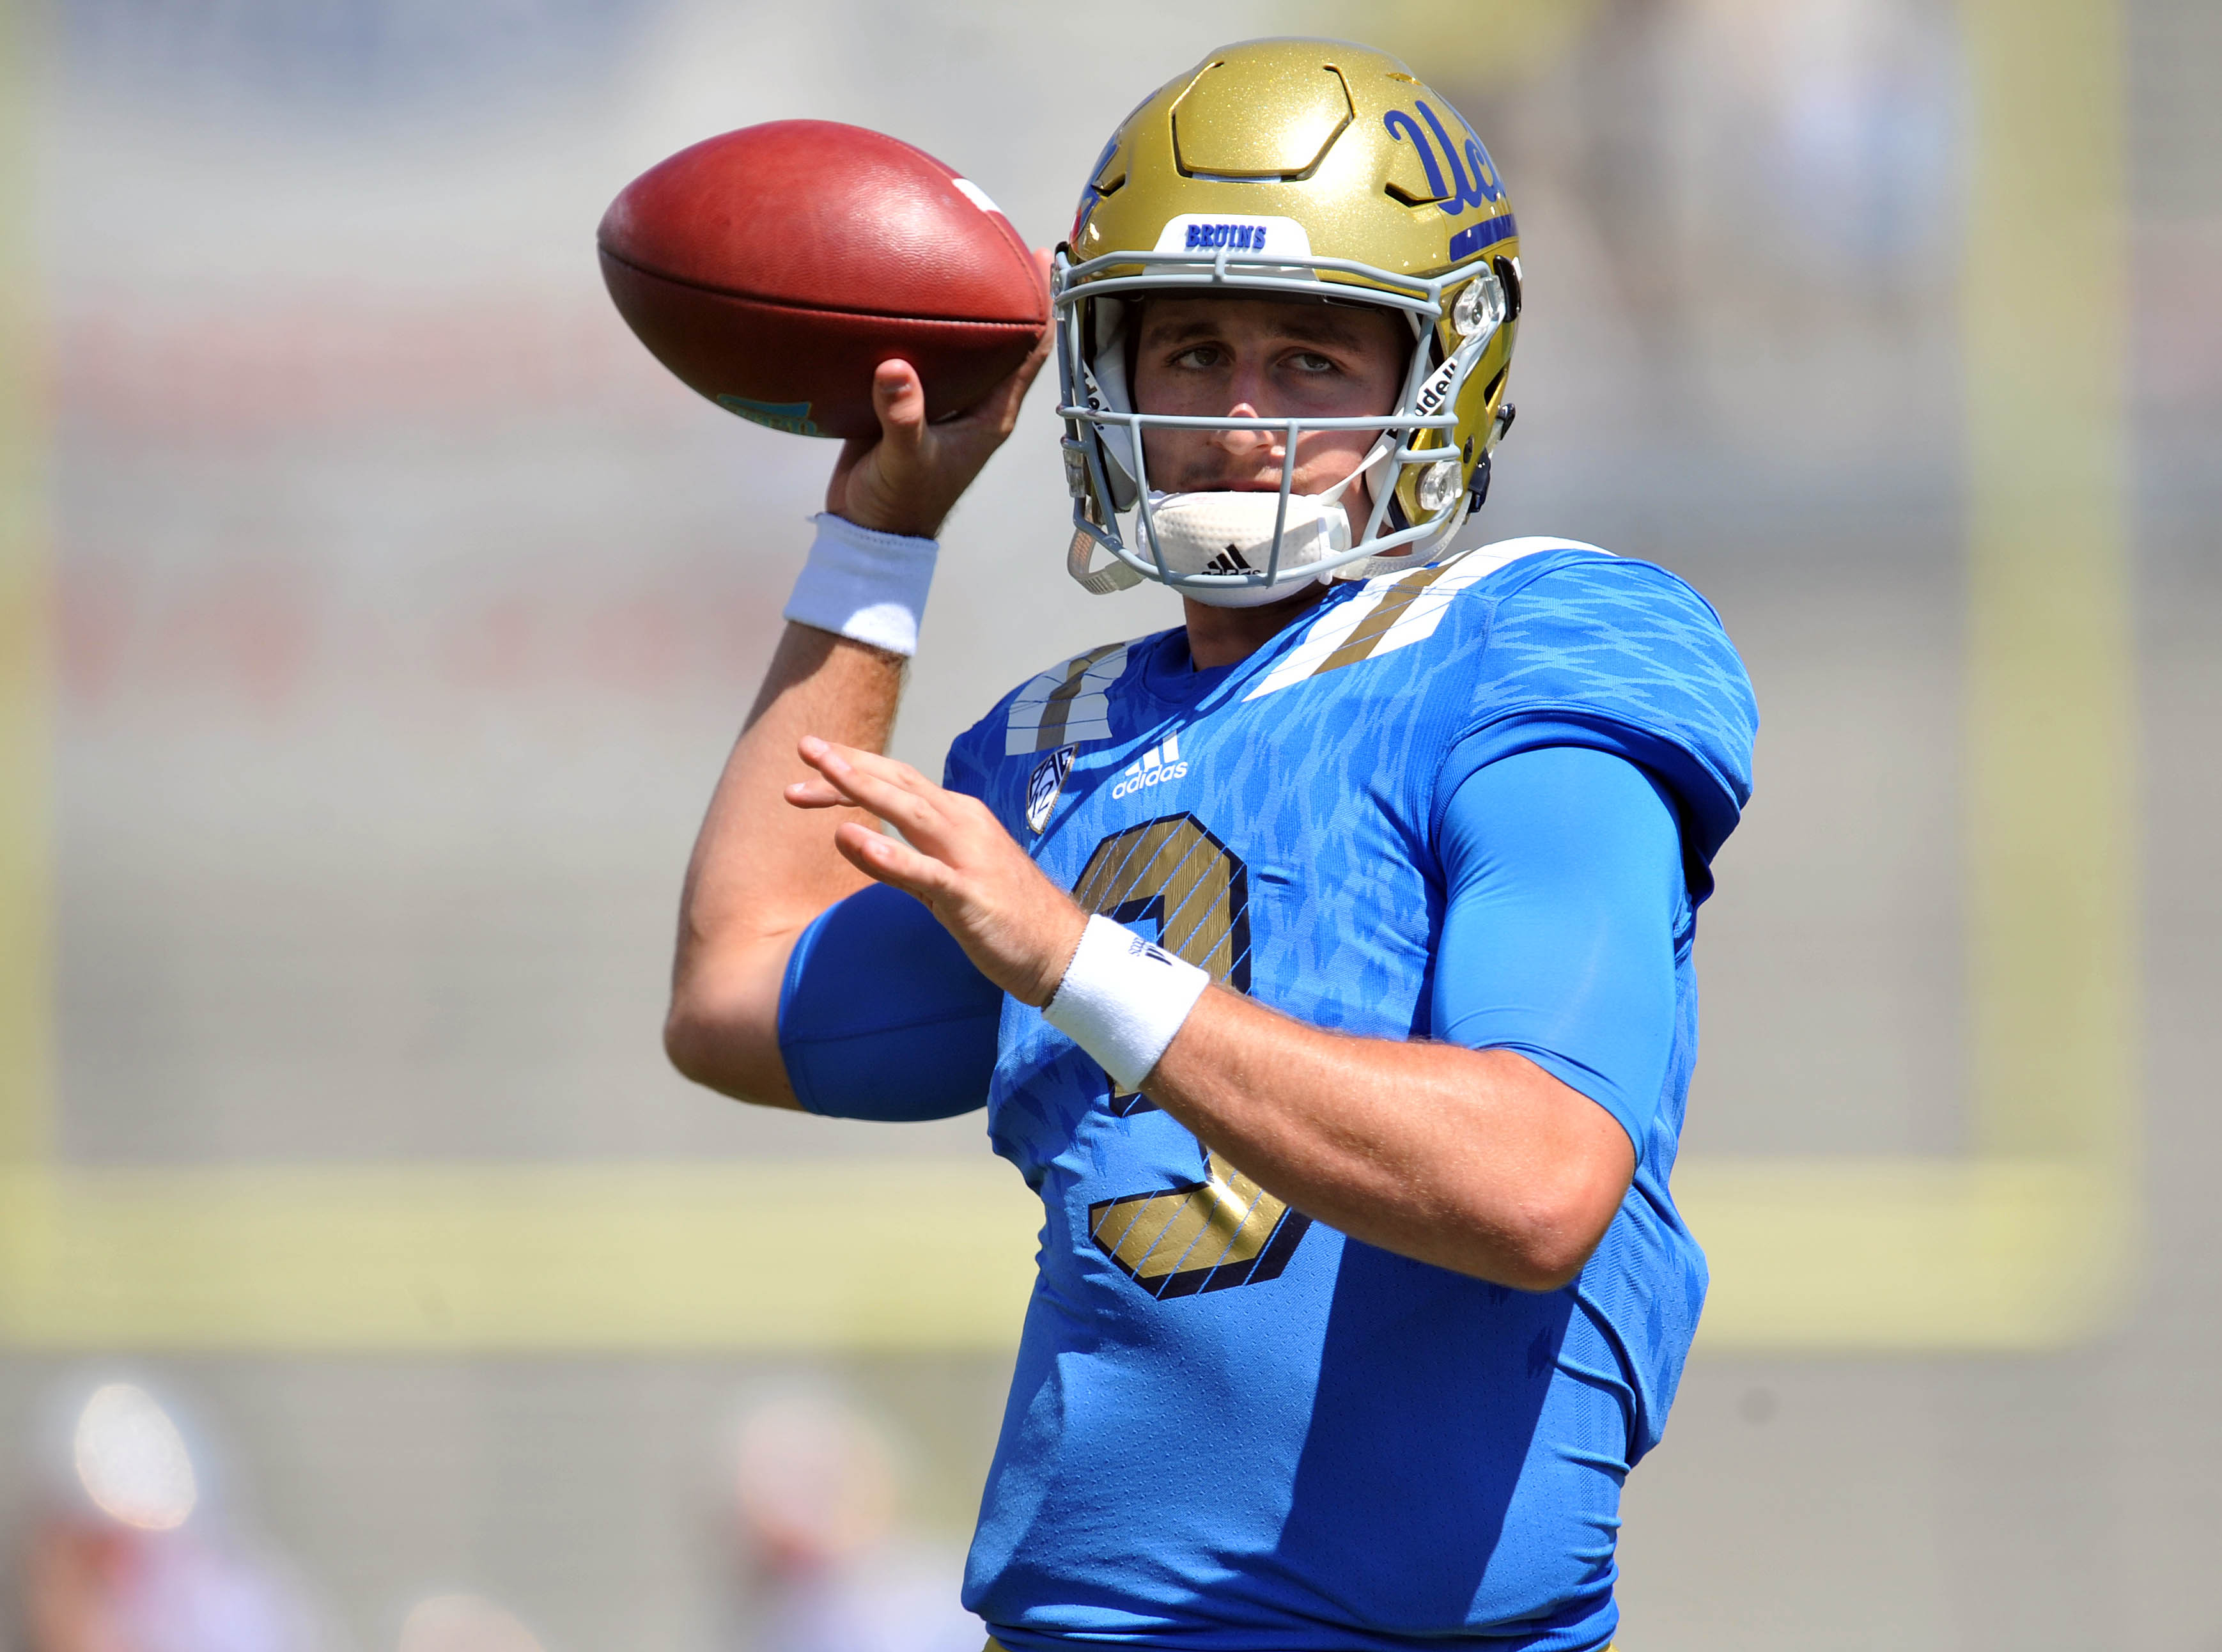 We have a picture of Josh Rosen in blue!